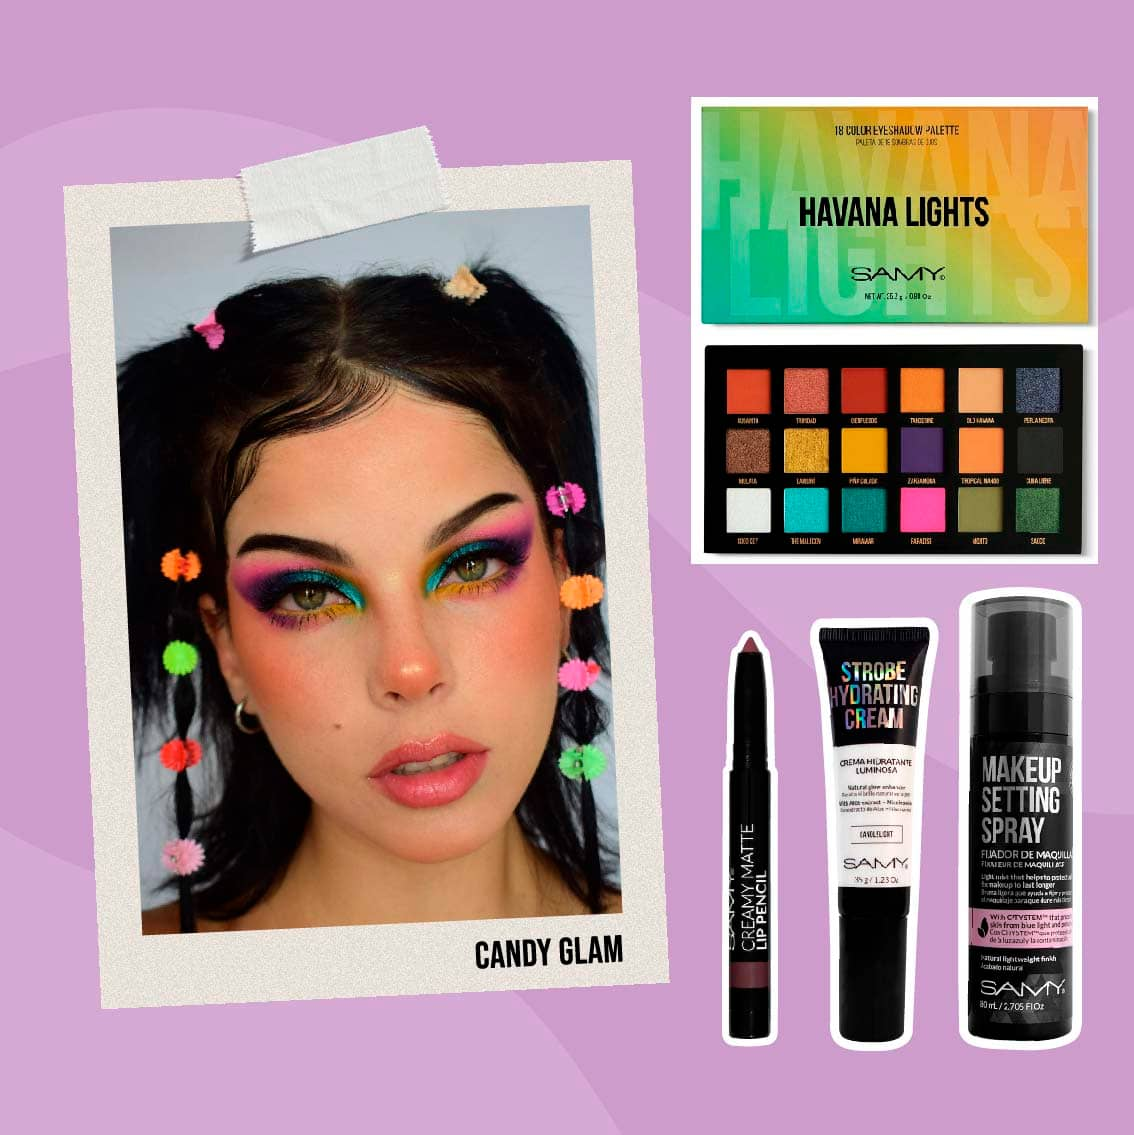 KIT CANDY GLAM